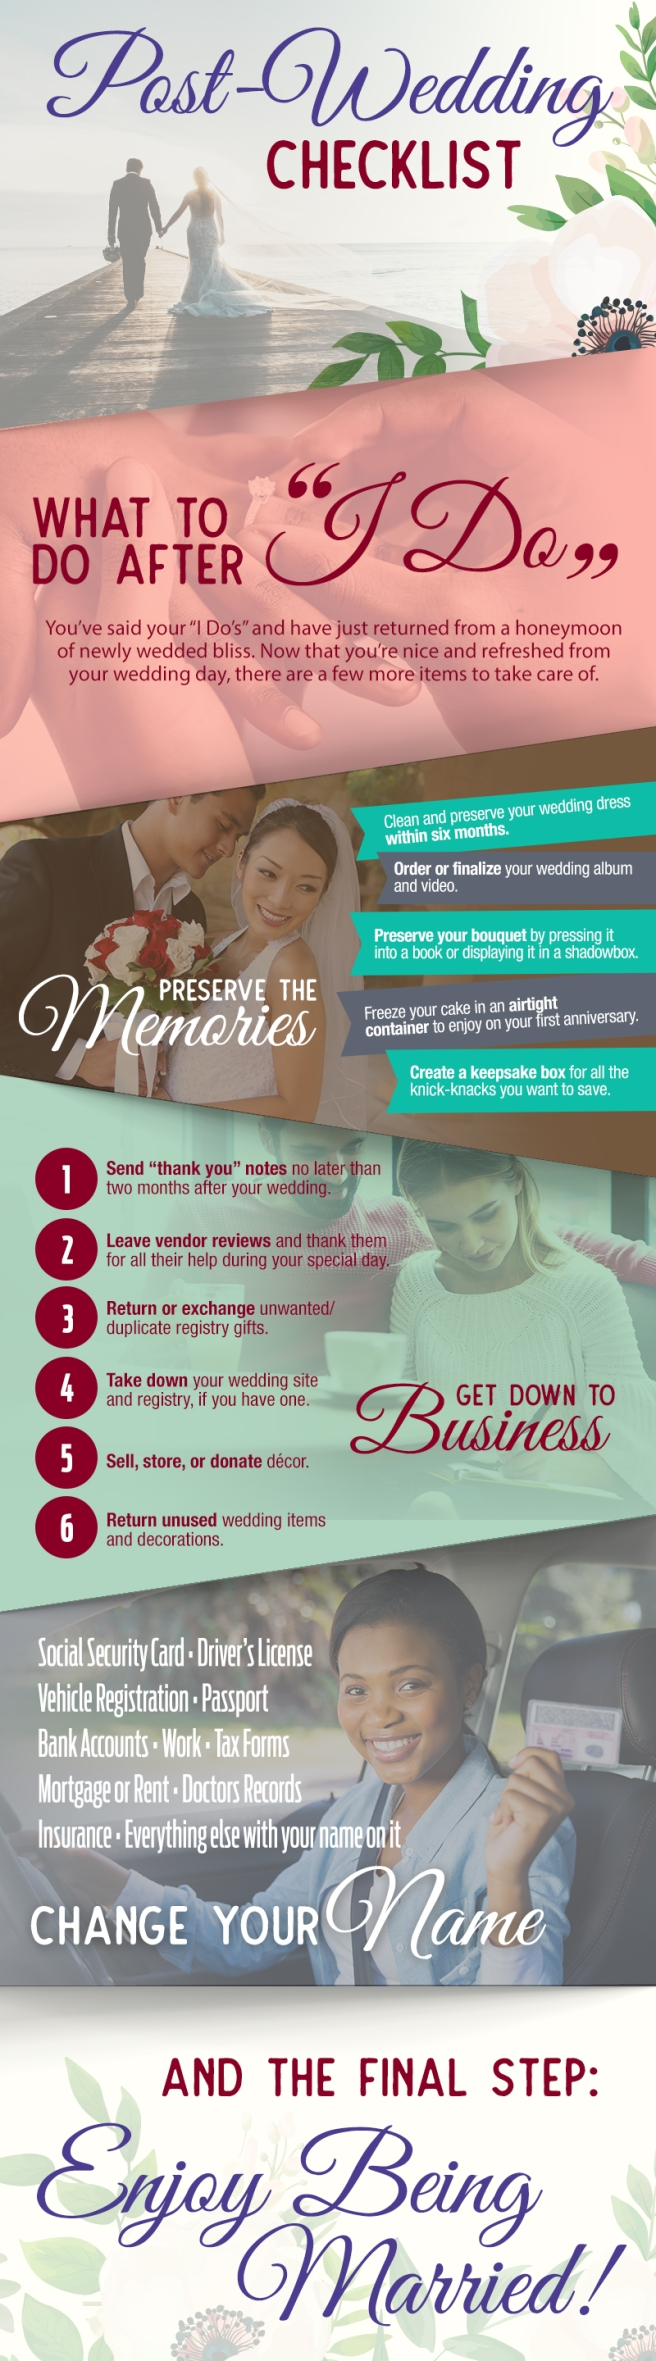 PostWedding_Infographic